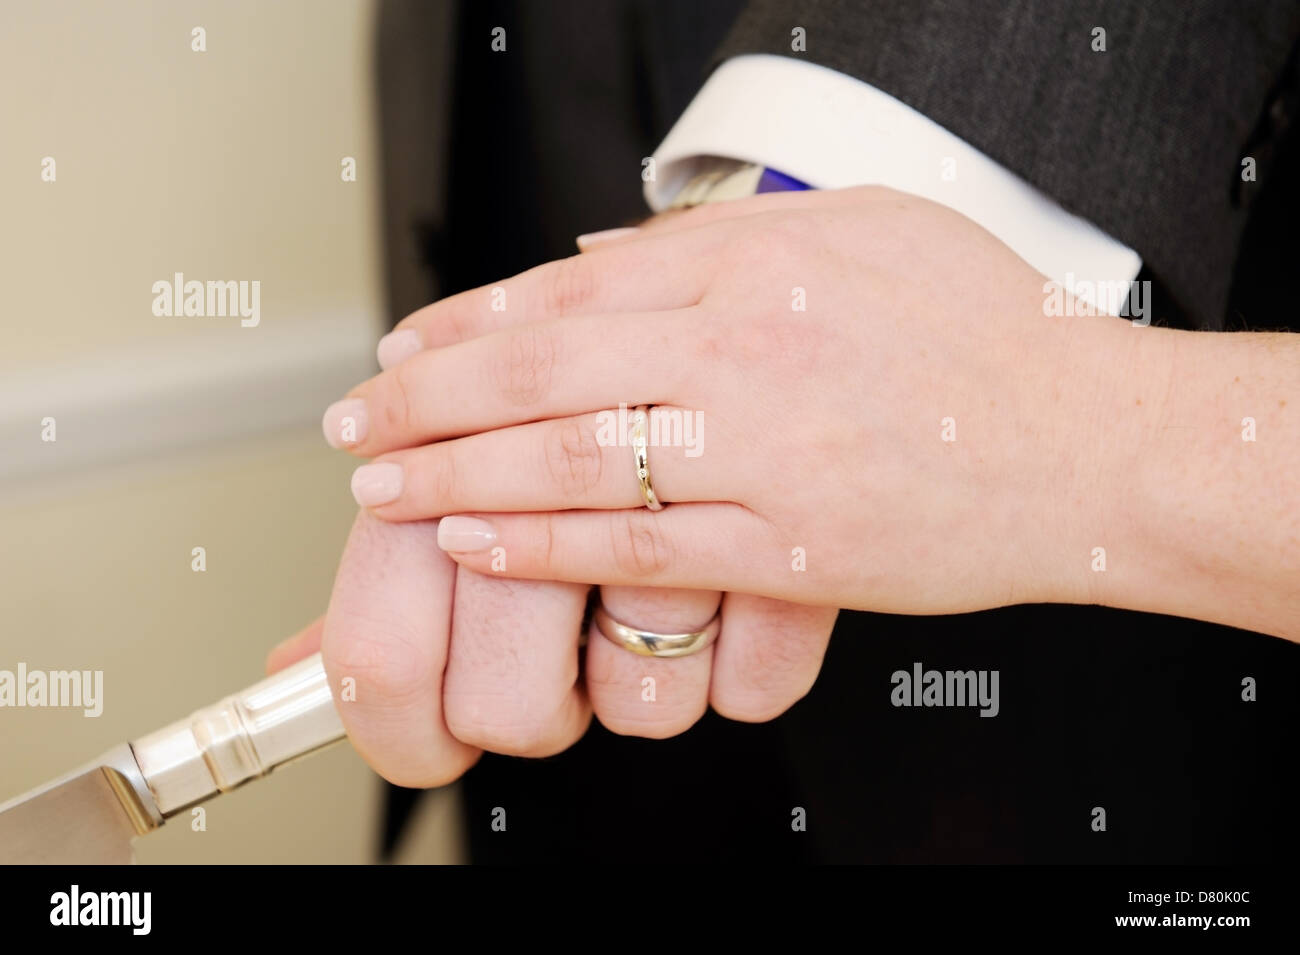 Showing Wedding Rings Stock Photos & Showing Wedding Rings Stock ...